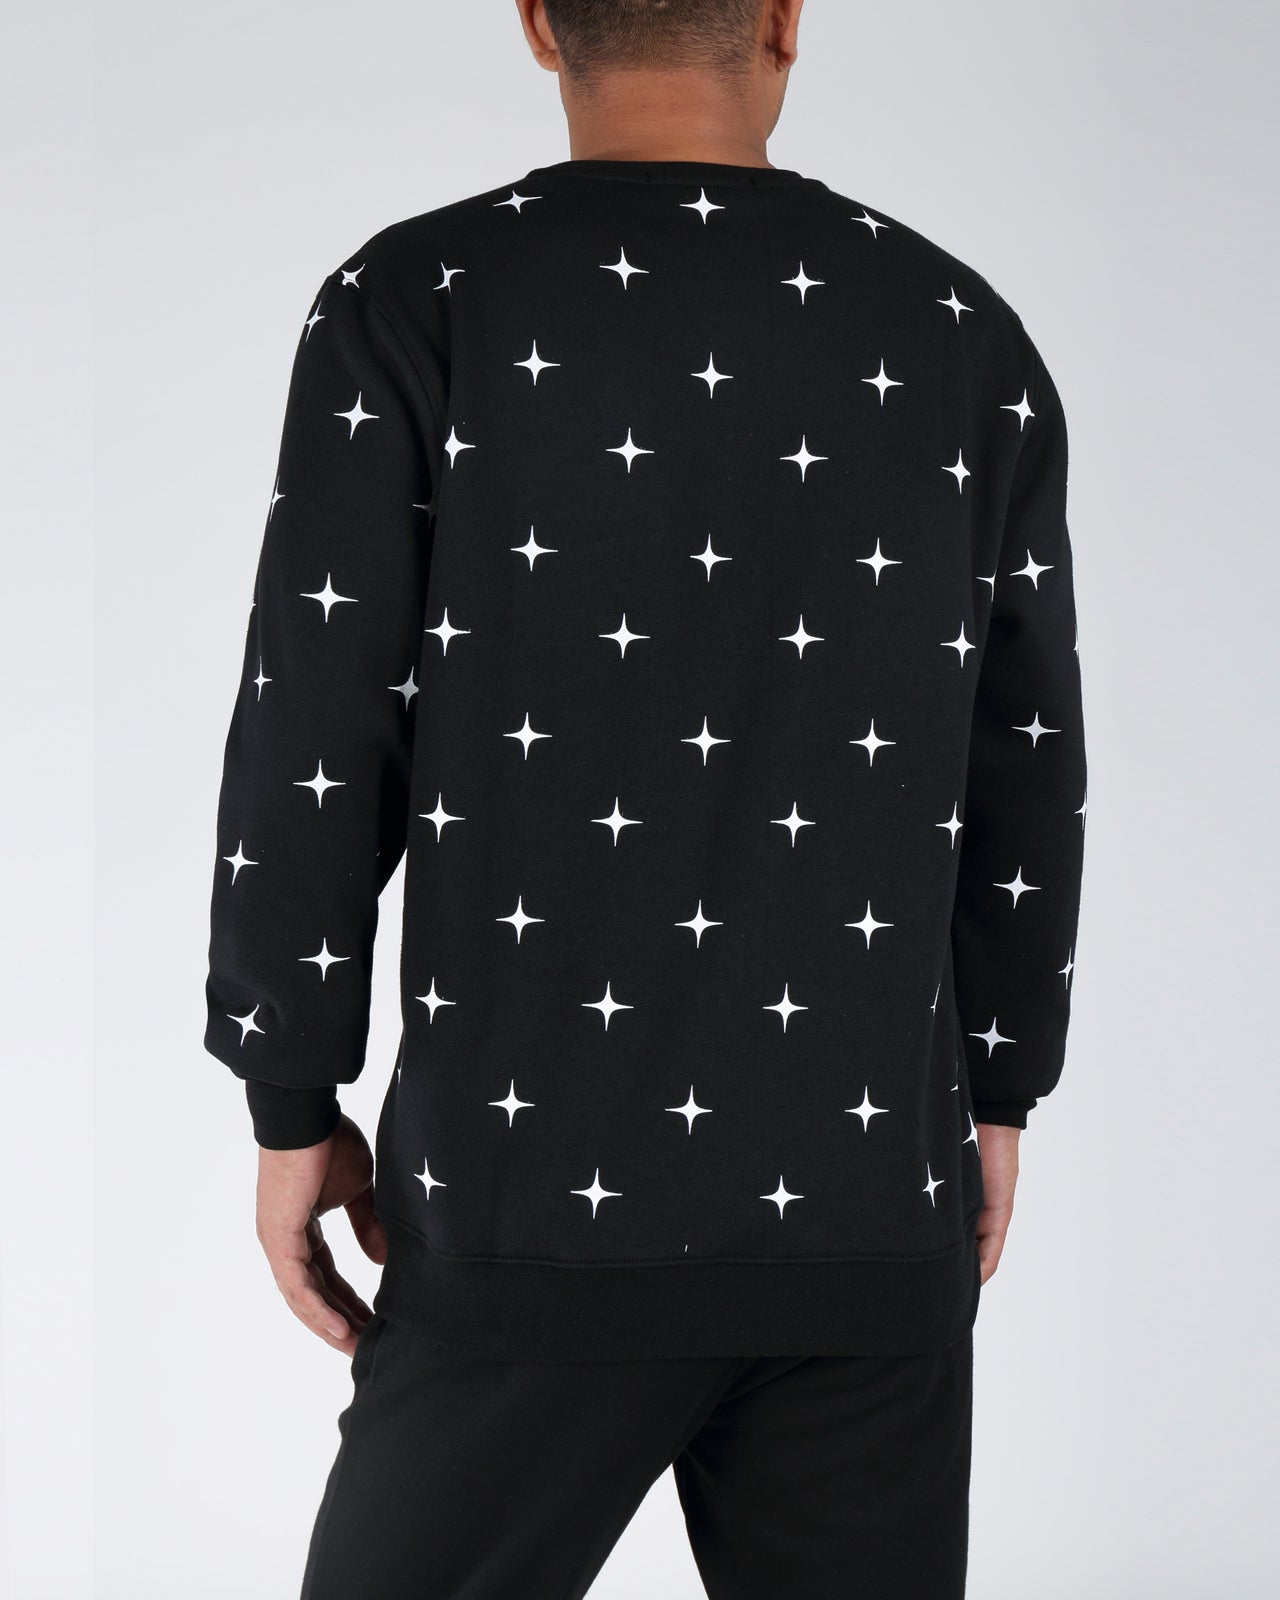 ASTRONAUT LADY SWEATSHIRT - Color: BLACK